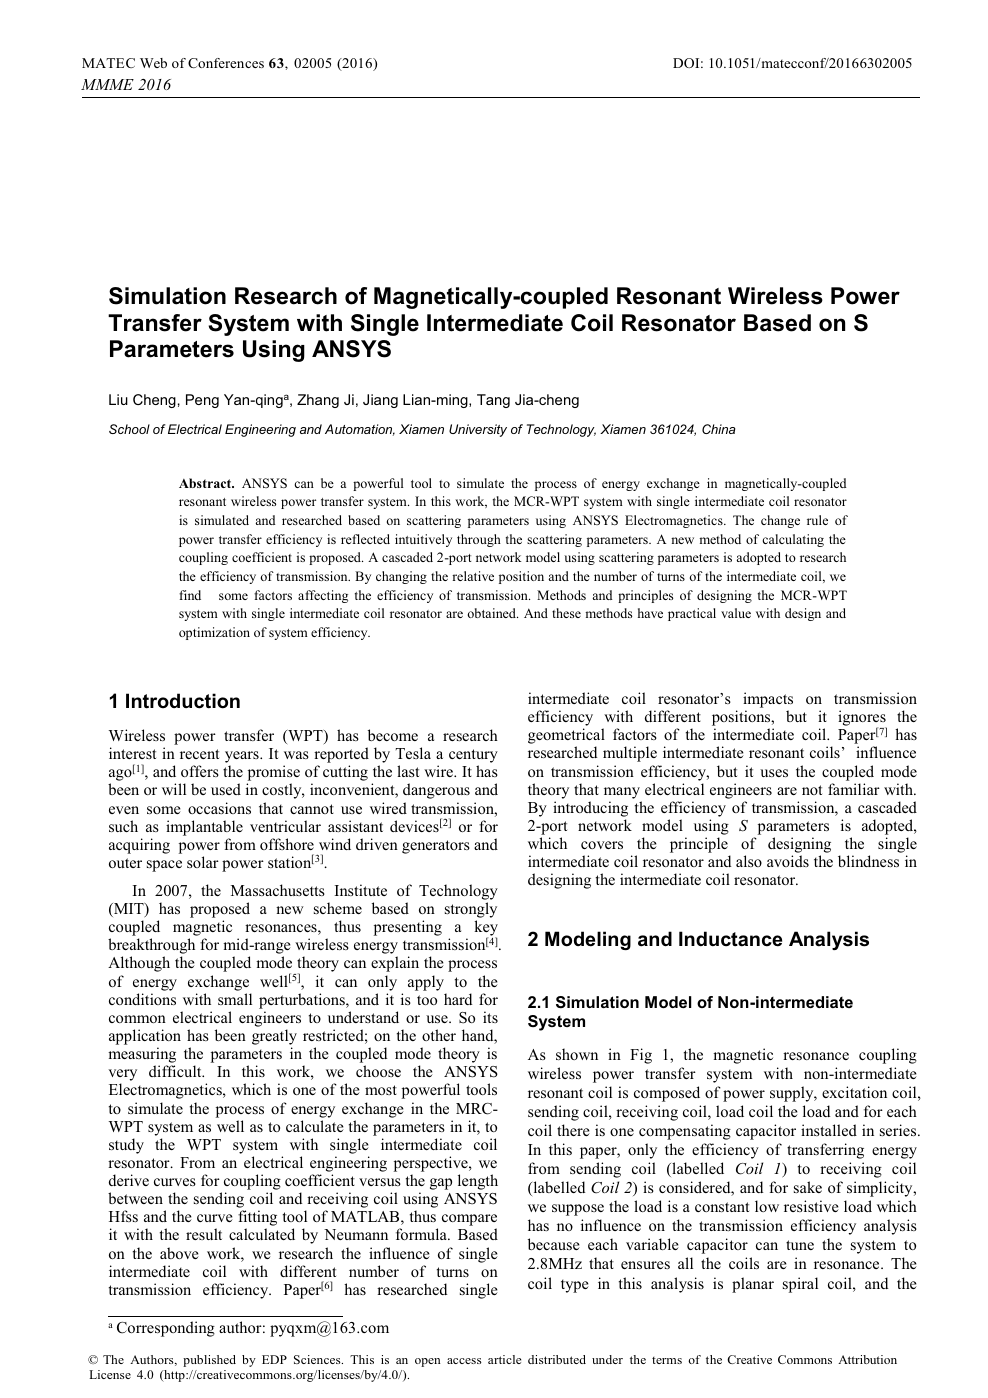 Simulation Research of Magnetically-coupled Resonant